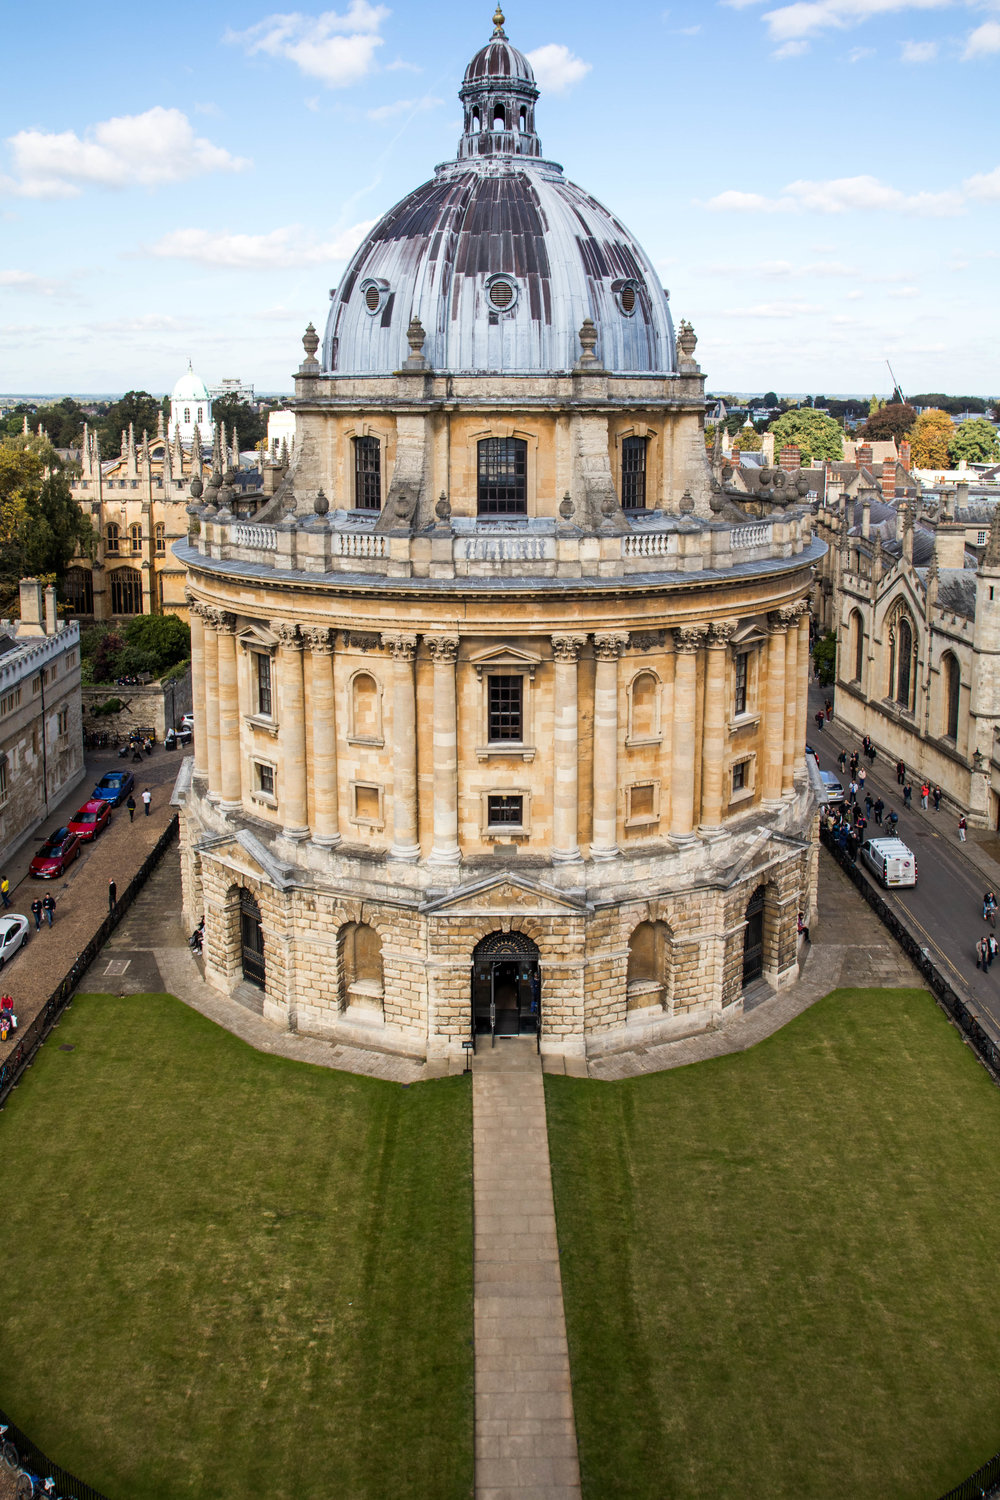 View of Radcliffe Camera from The University Church of St. Mary, Oxford.